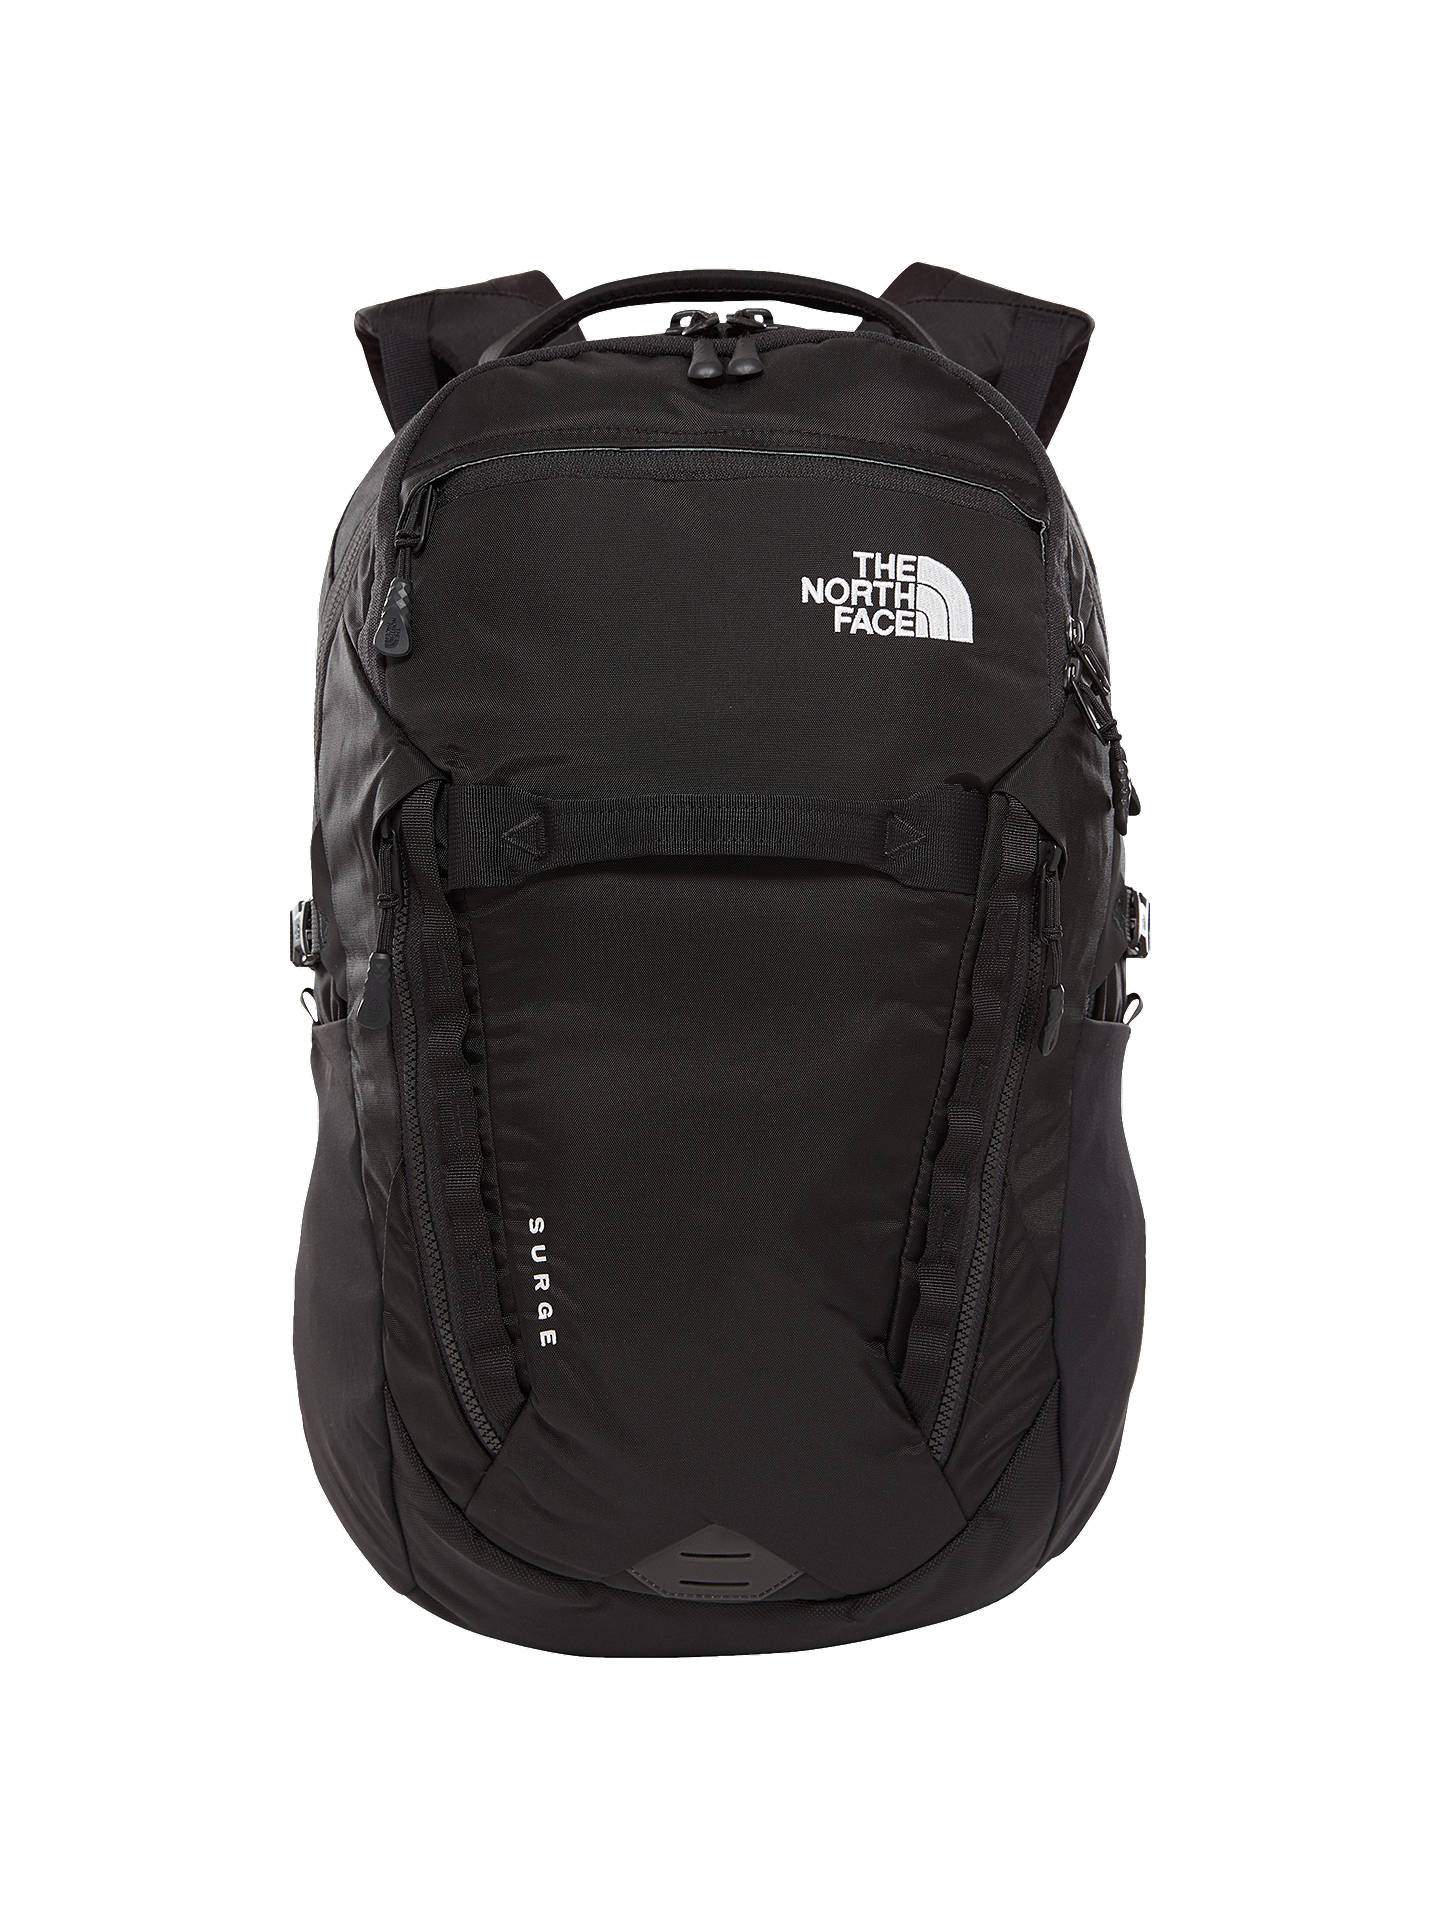 1c1538ac5 The North Face Surge Backpack, Black